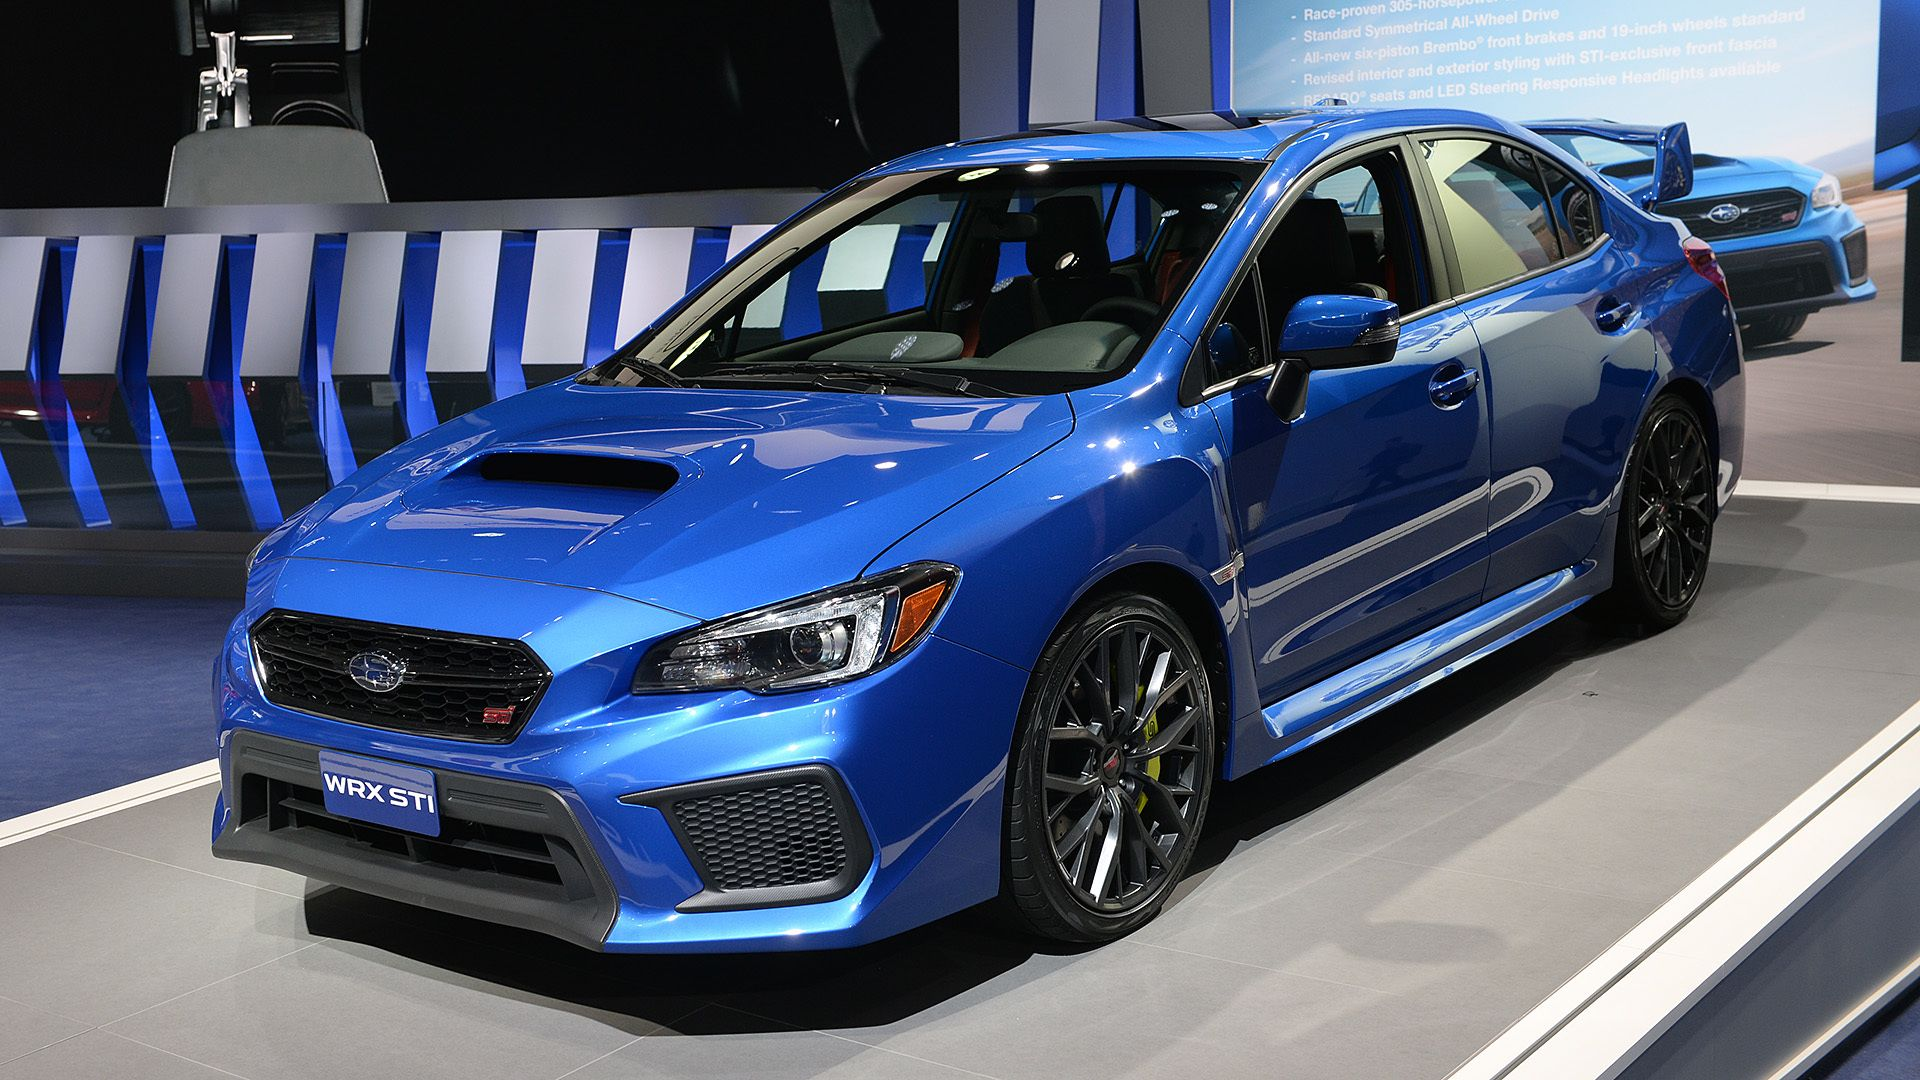 2018 subaru impreza wrx sti subaru impreza wrx sti pinterest subaru impreza subaru and. Black Bedroom Furniture Sets. Home Design Ideas